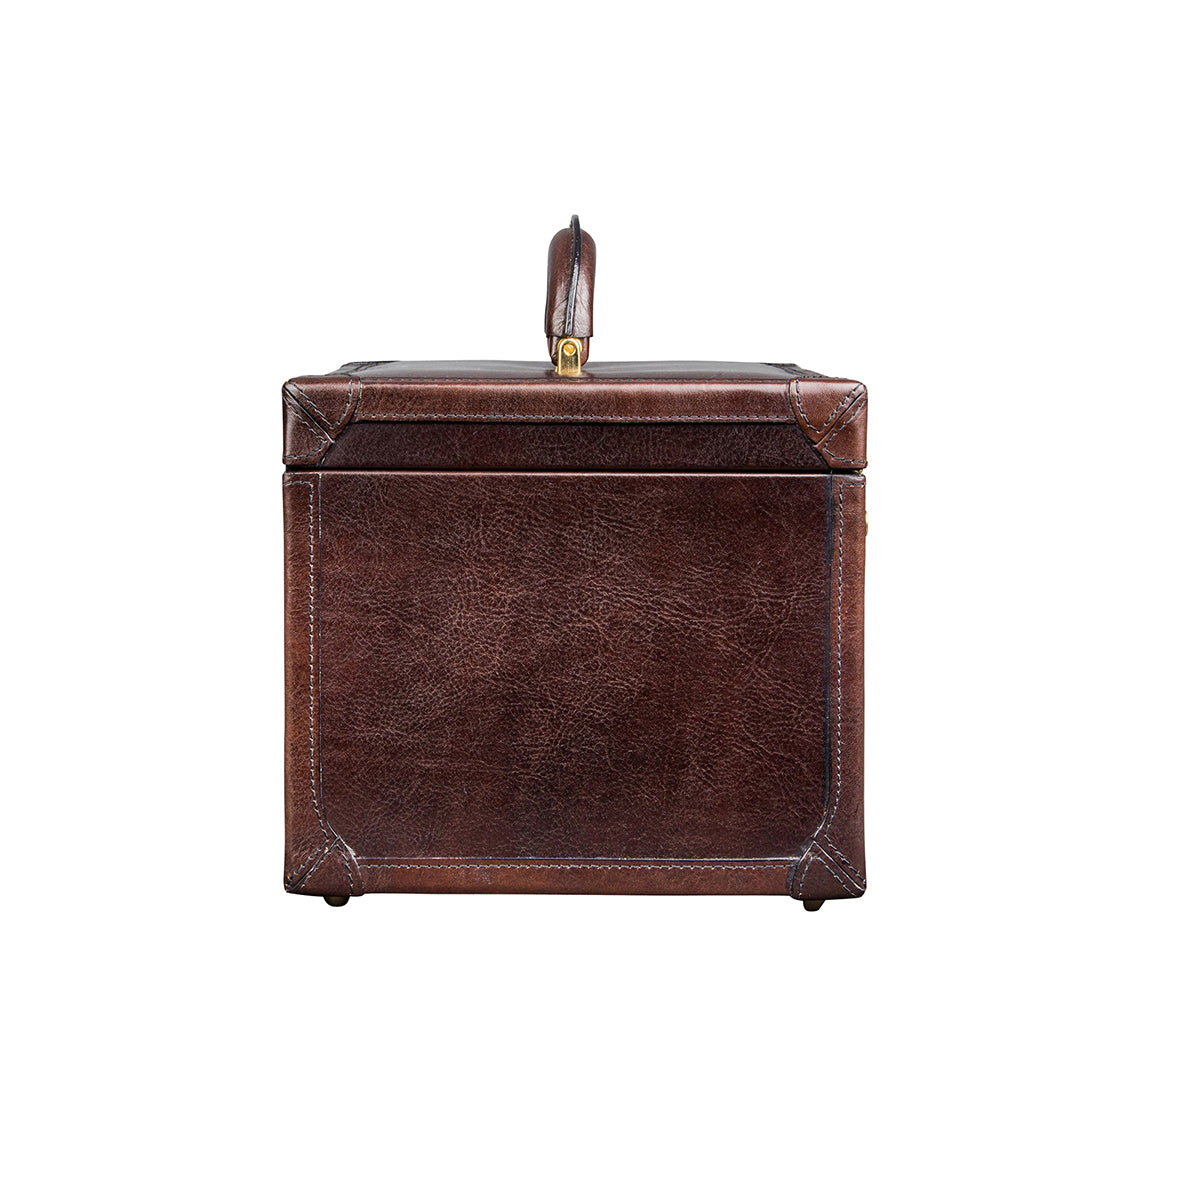 Image 3 of the 'Bellino' Dark Chocolate Veg-Tanned Leather Vanity Case